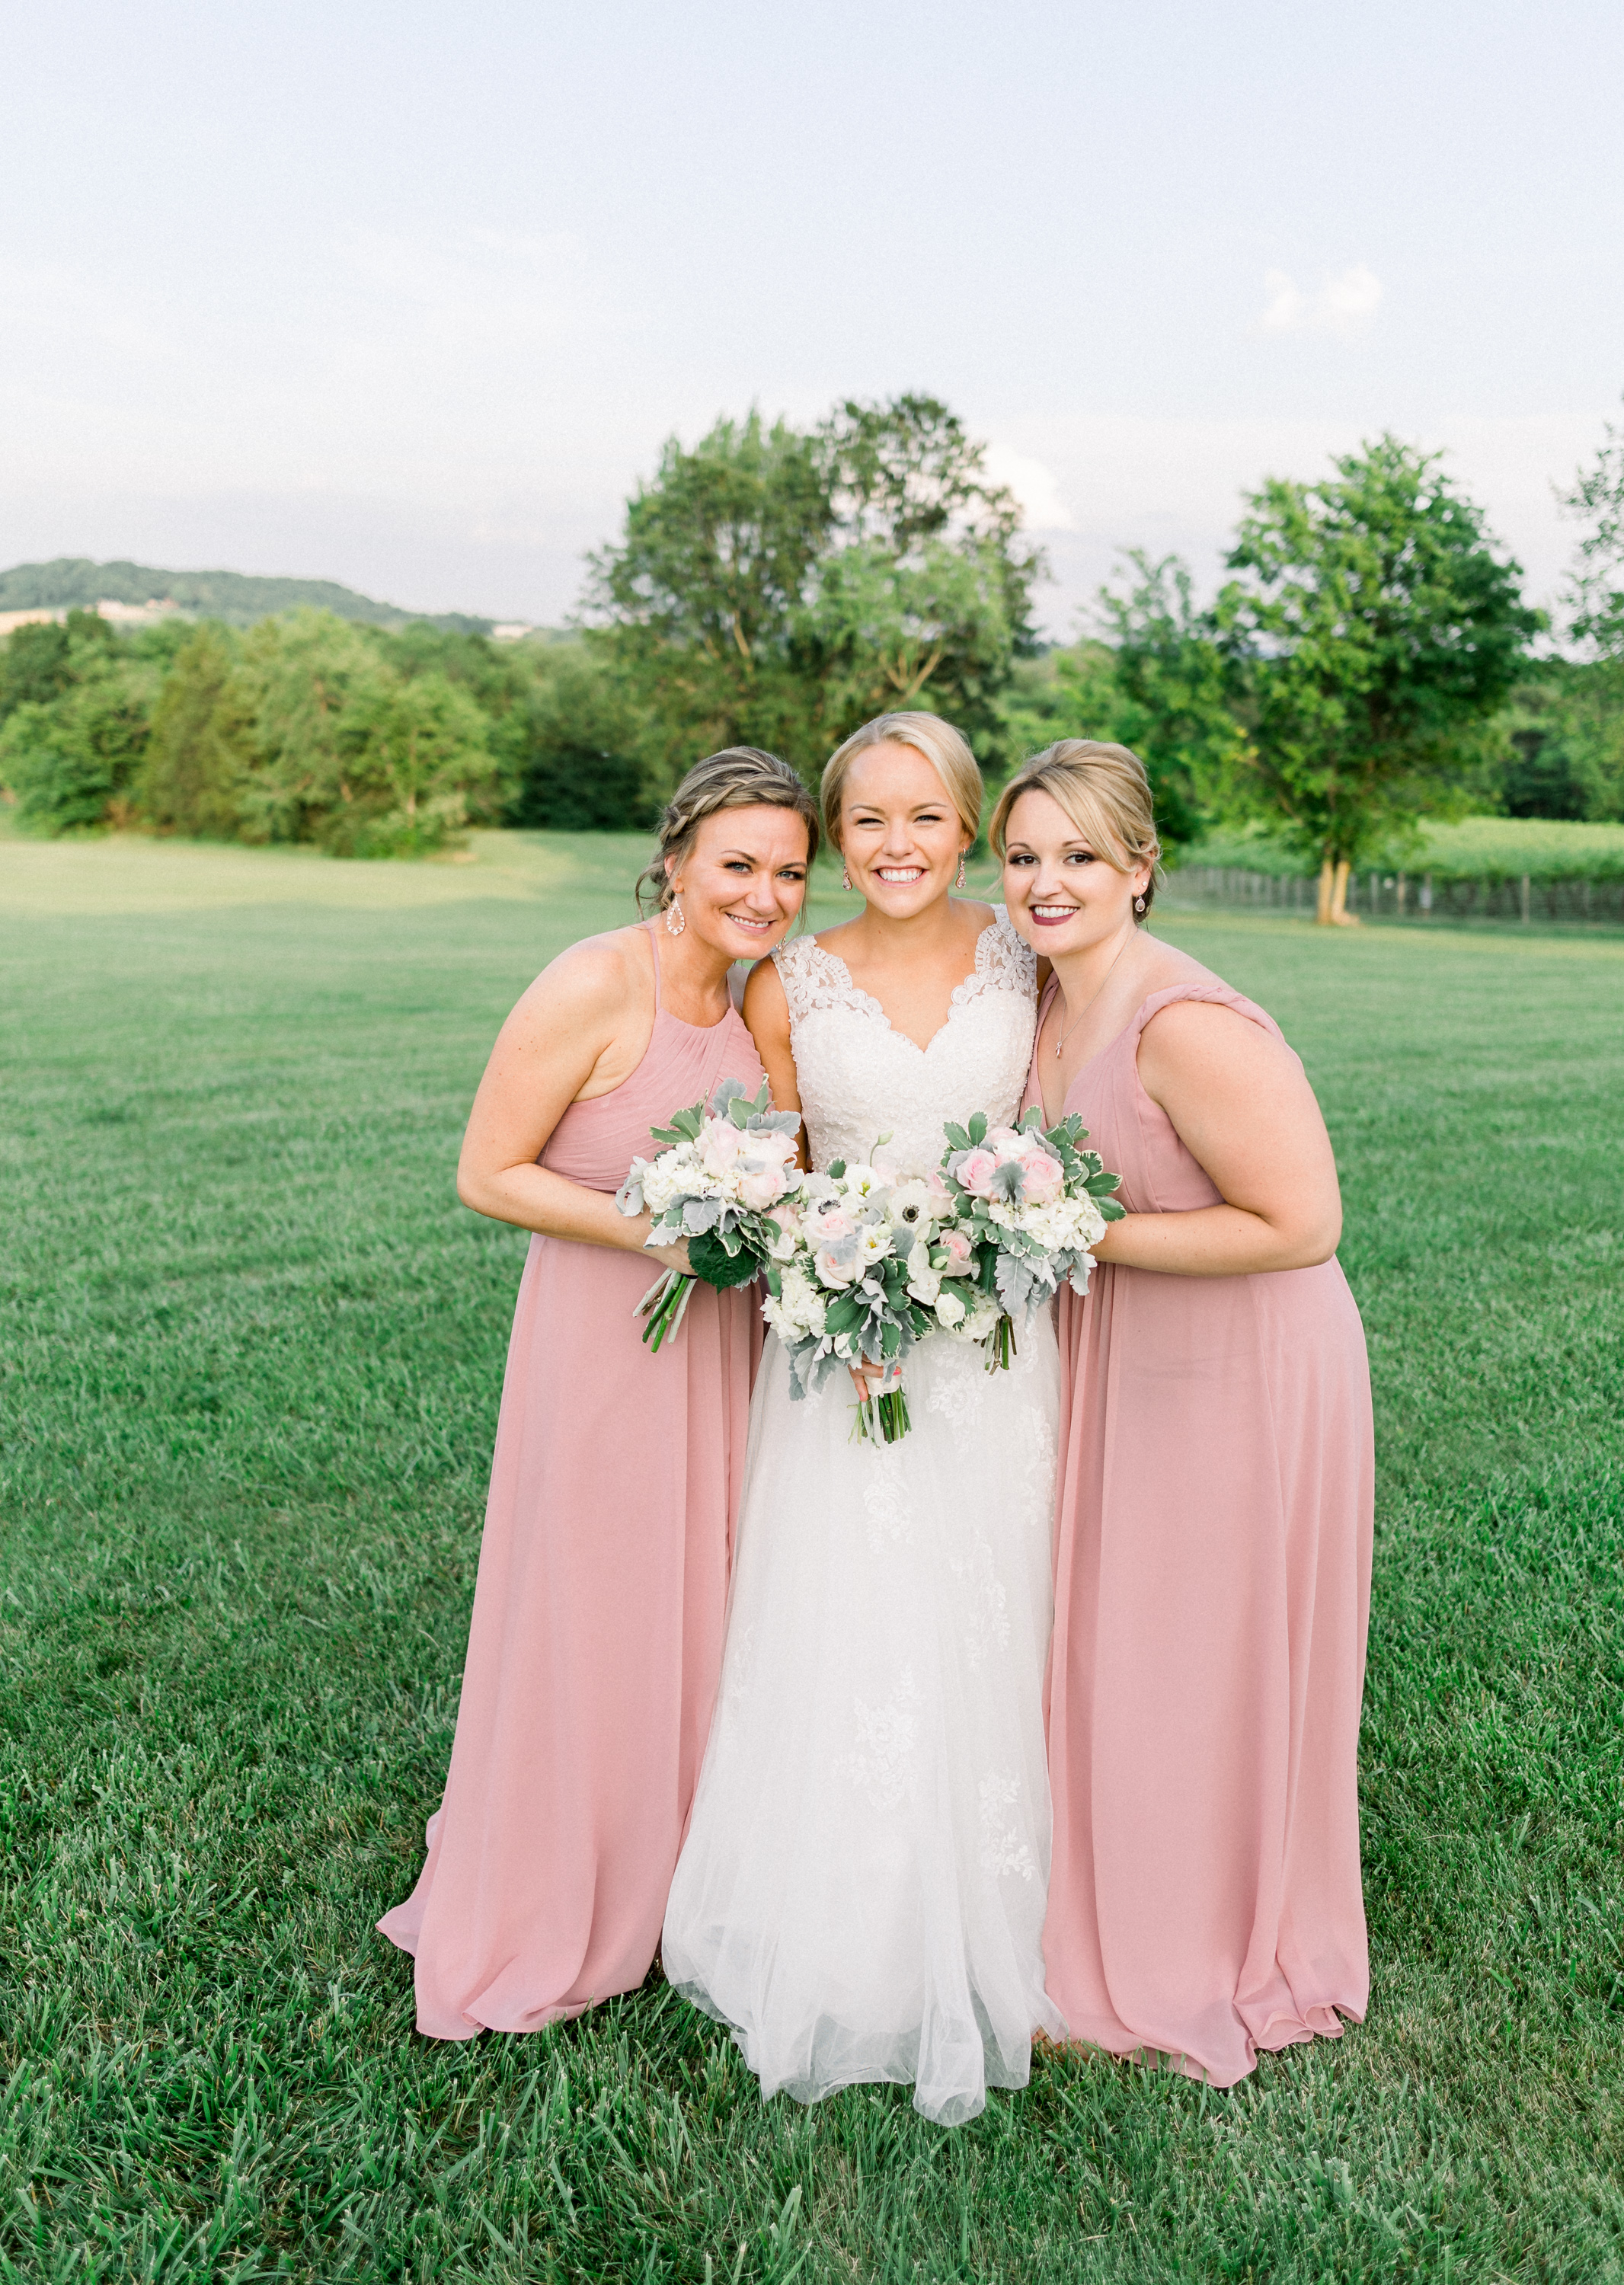 Molly + Dan wedding 6-7-19 (672 of 916).jpg